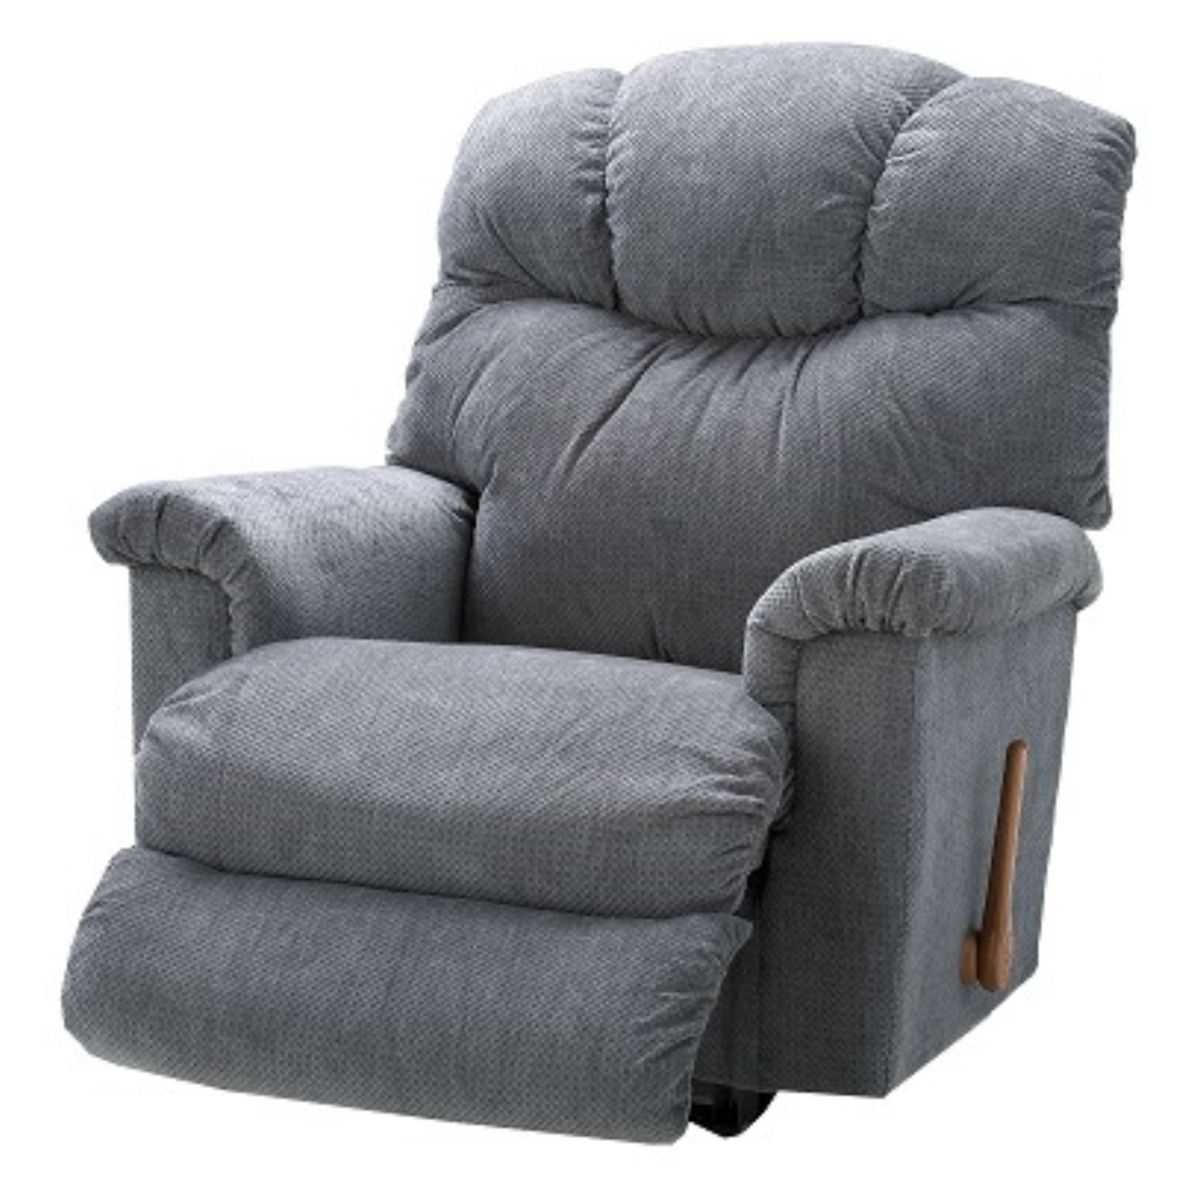 Franco Iii Fabric Swivel Rocker Recliners For Well Known La Z Boy Furniture Showroom (View 5 of 20)